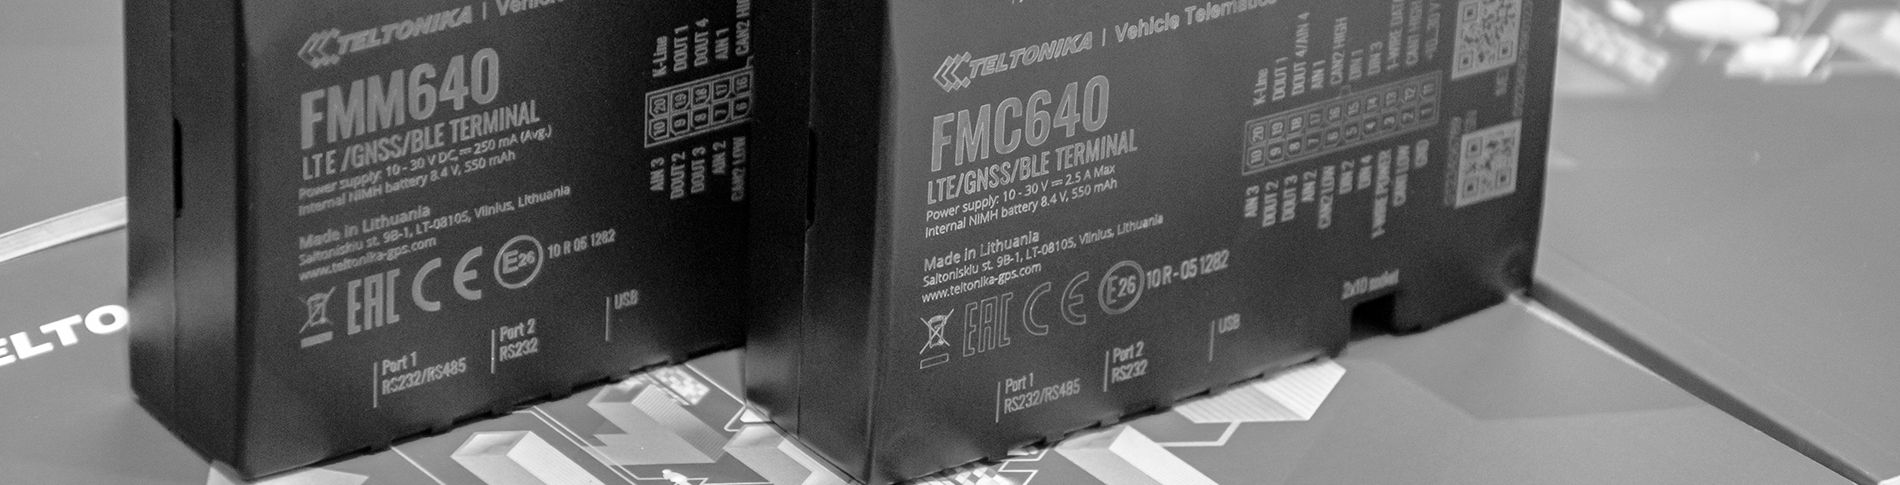 NEW 4G (LTE CAT1 and CAT-M1) Devices – FMC640 and FMM640